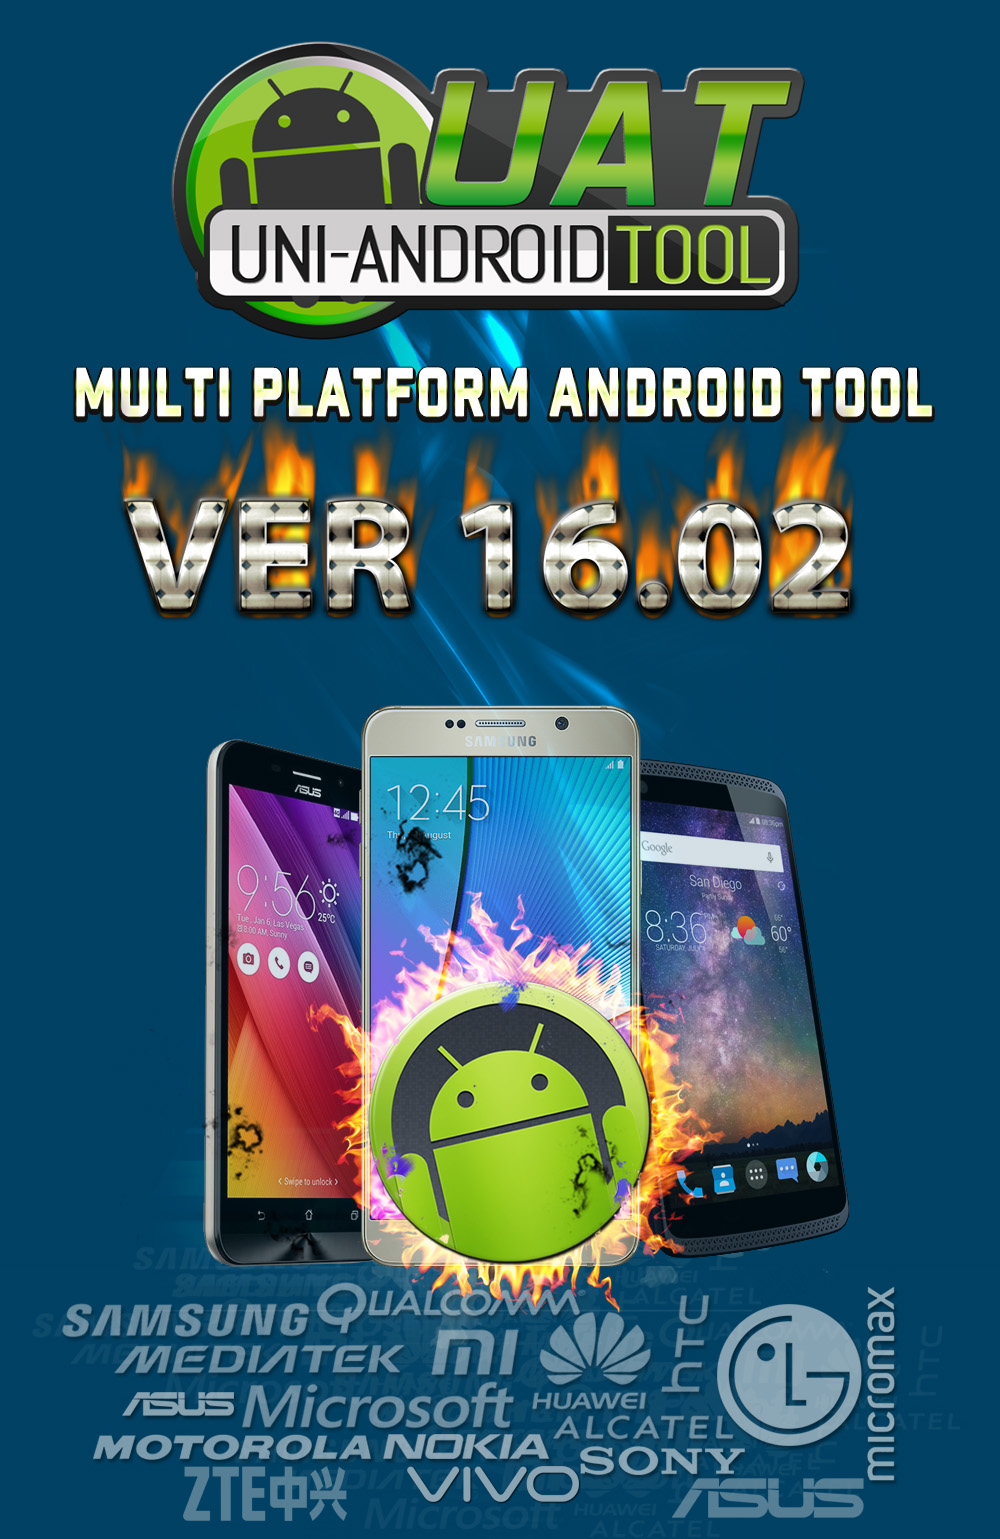 Uni-Android Tool [UAT] Version 16 02 Released [8/4/2018] – مدونة